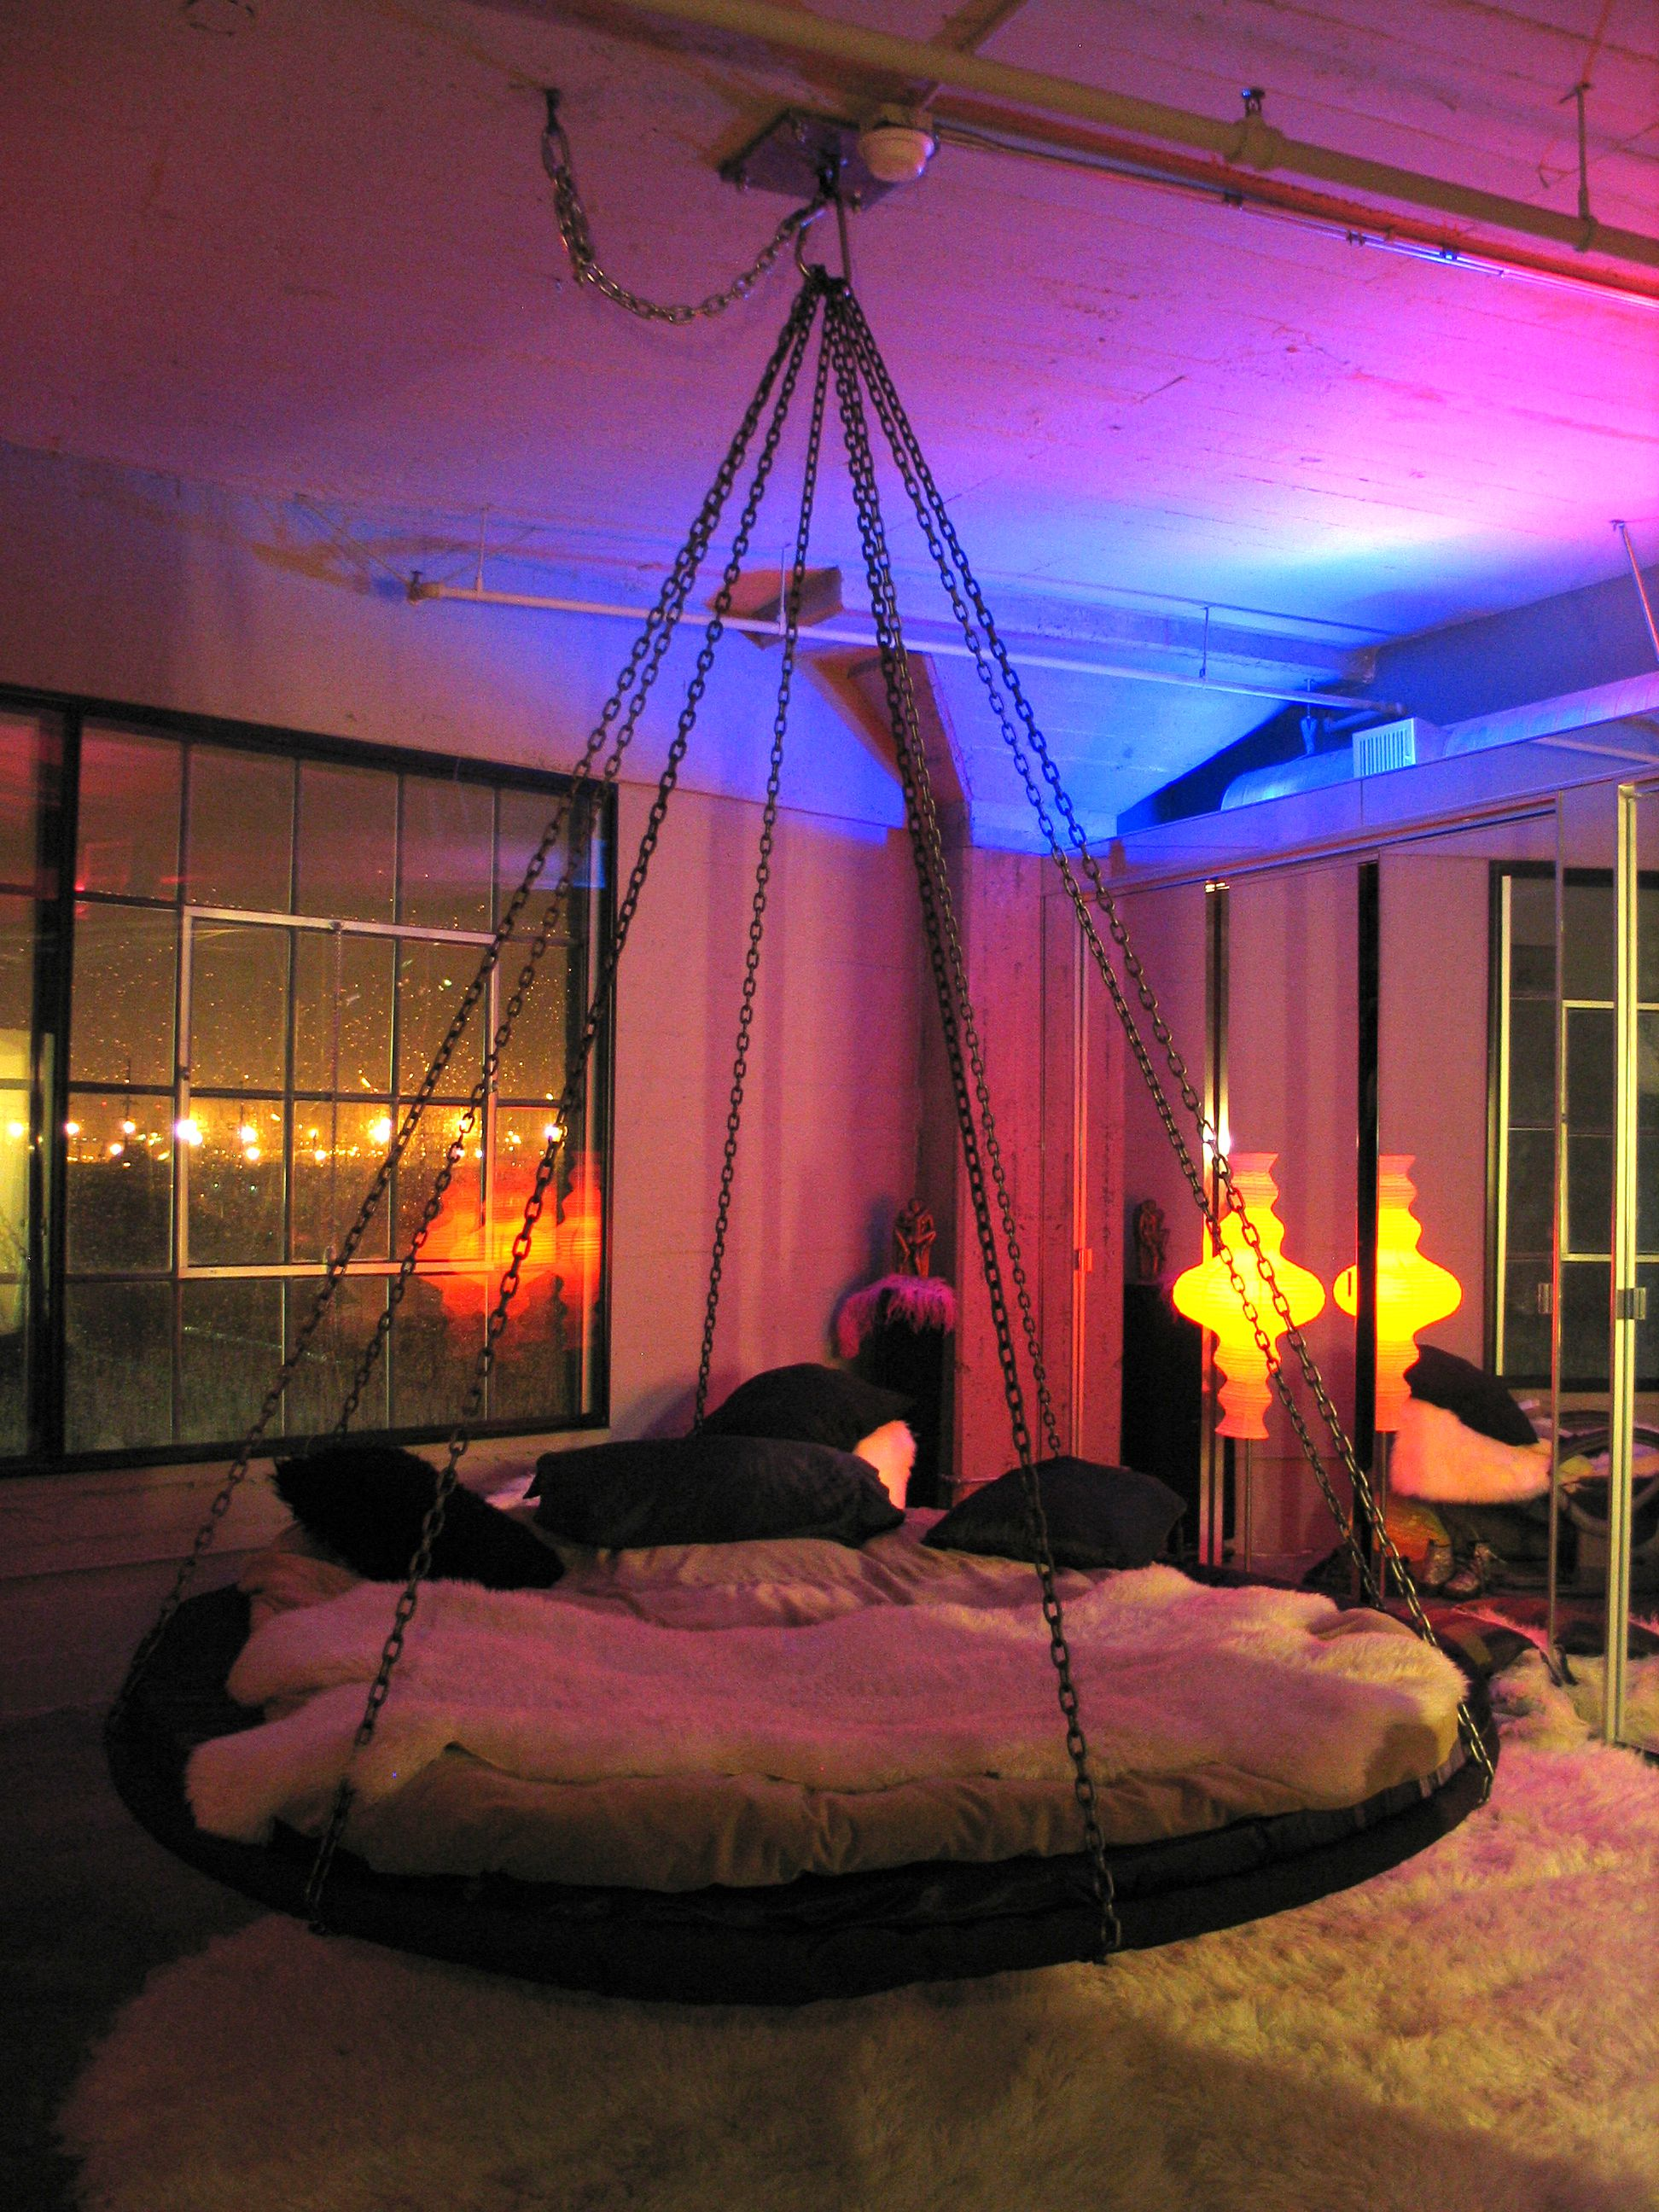 Hanging bed chains - Floating Round Hanging Bed With Chains And Fabulous Lighting